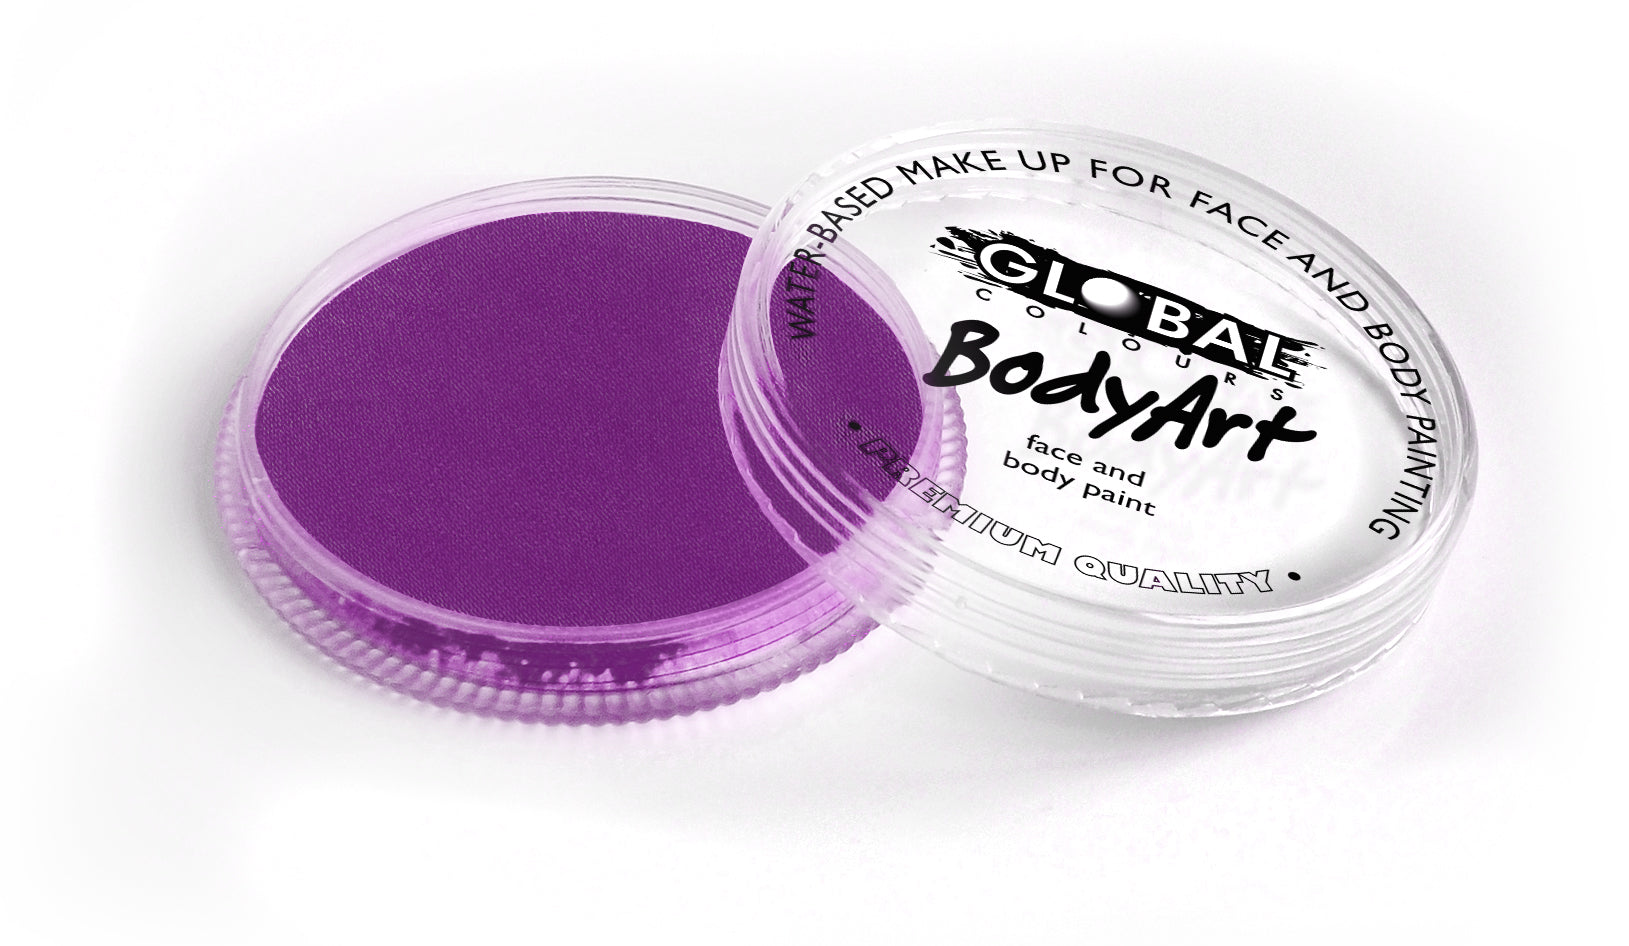 Global Body Art Face Paint - Standard Deep Magenta 32g